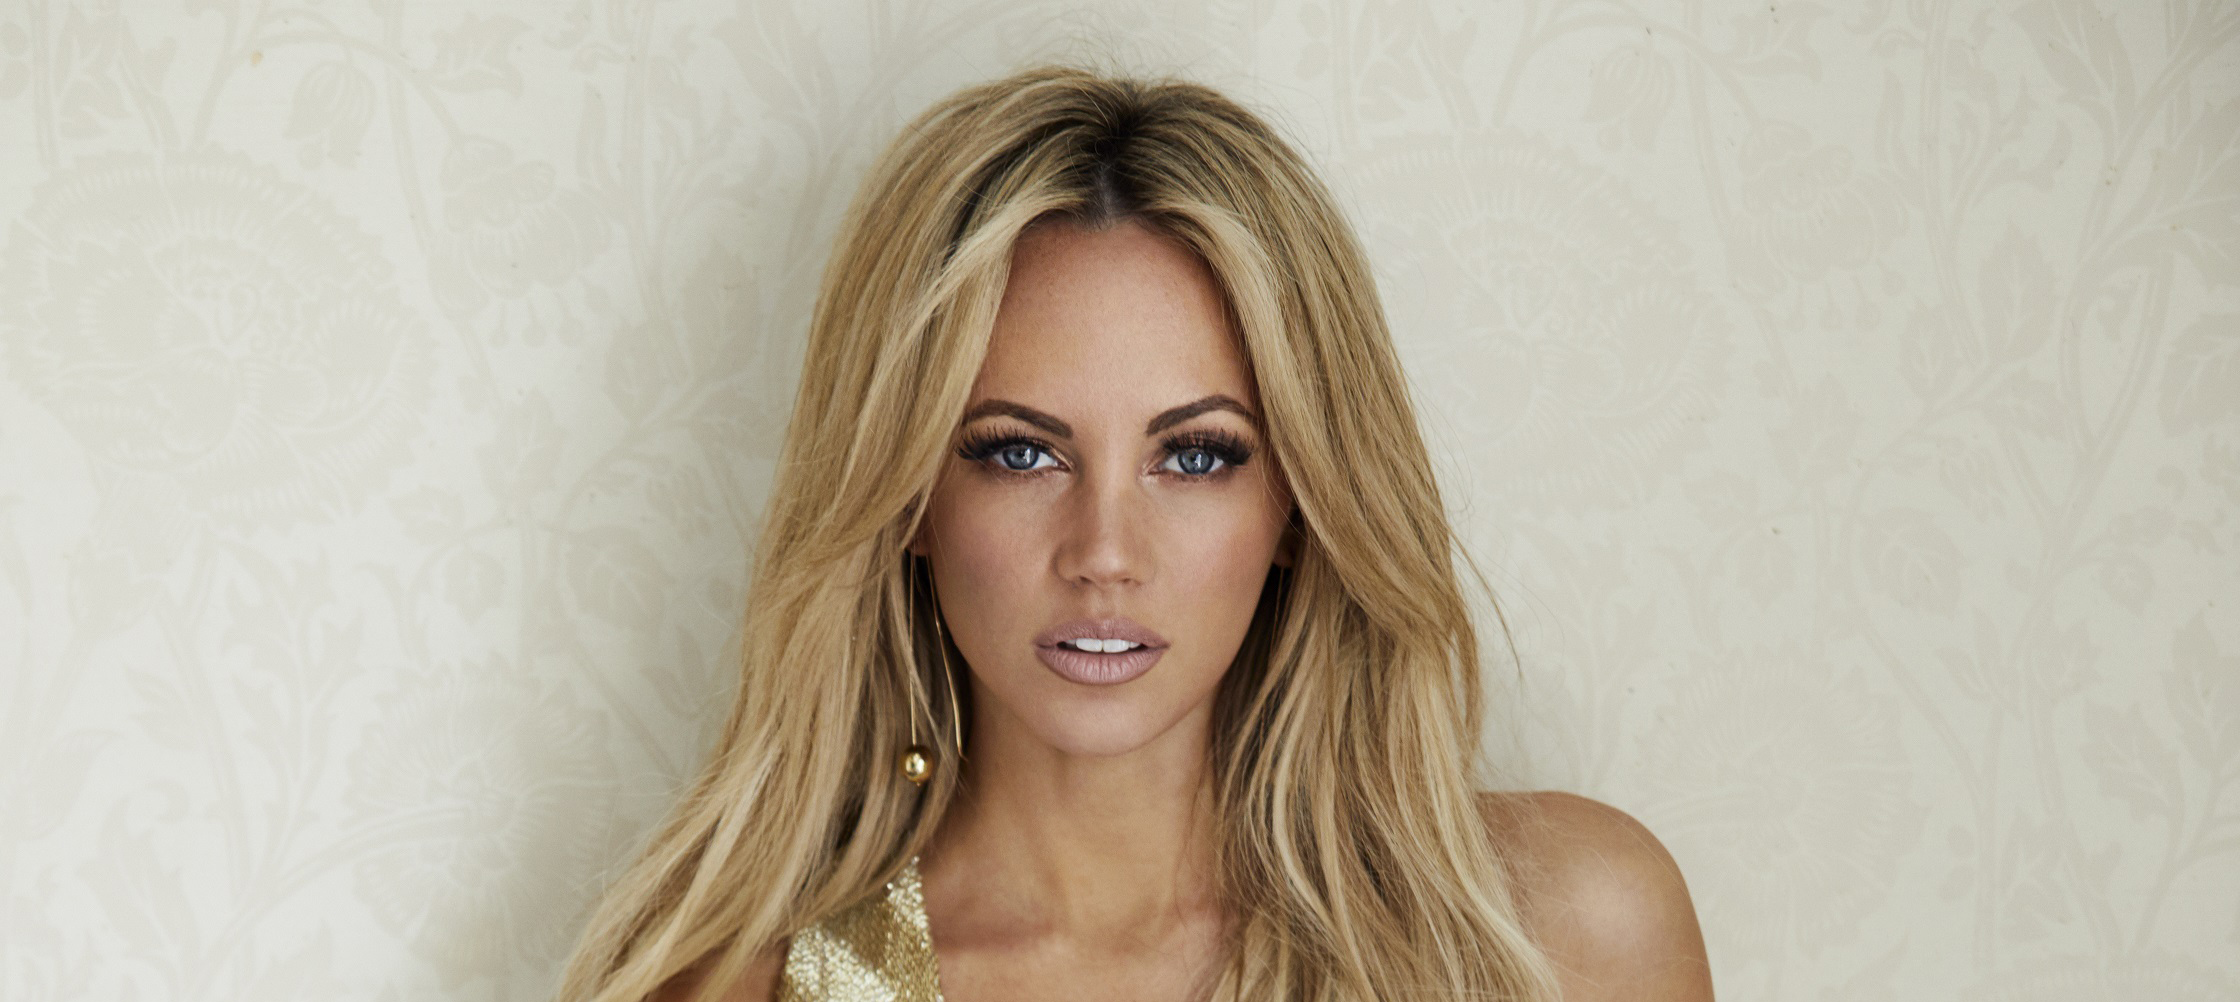 2019 Samantha Jade naked (12 photo), Fappening